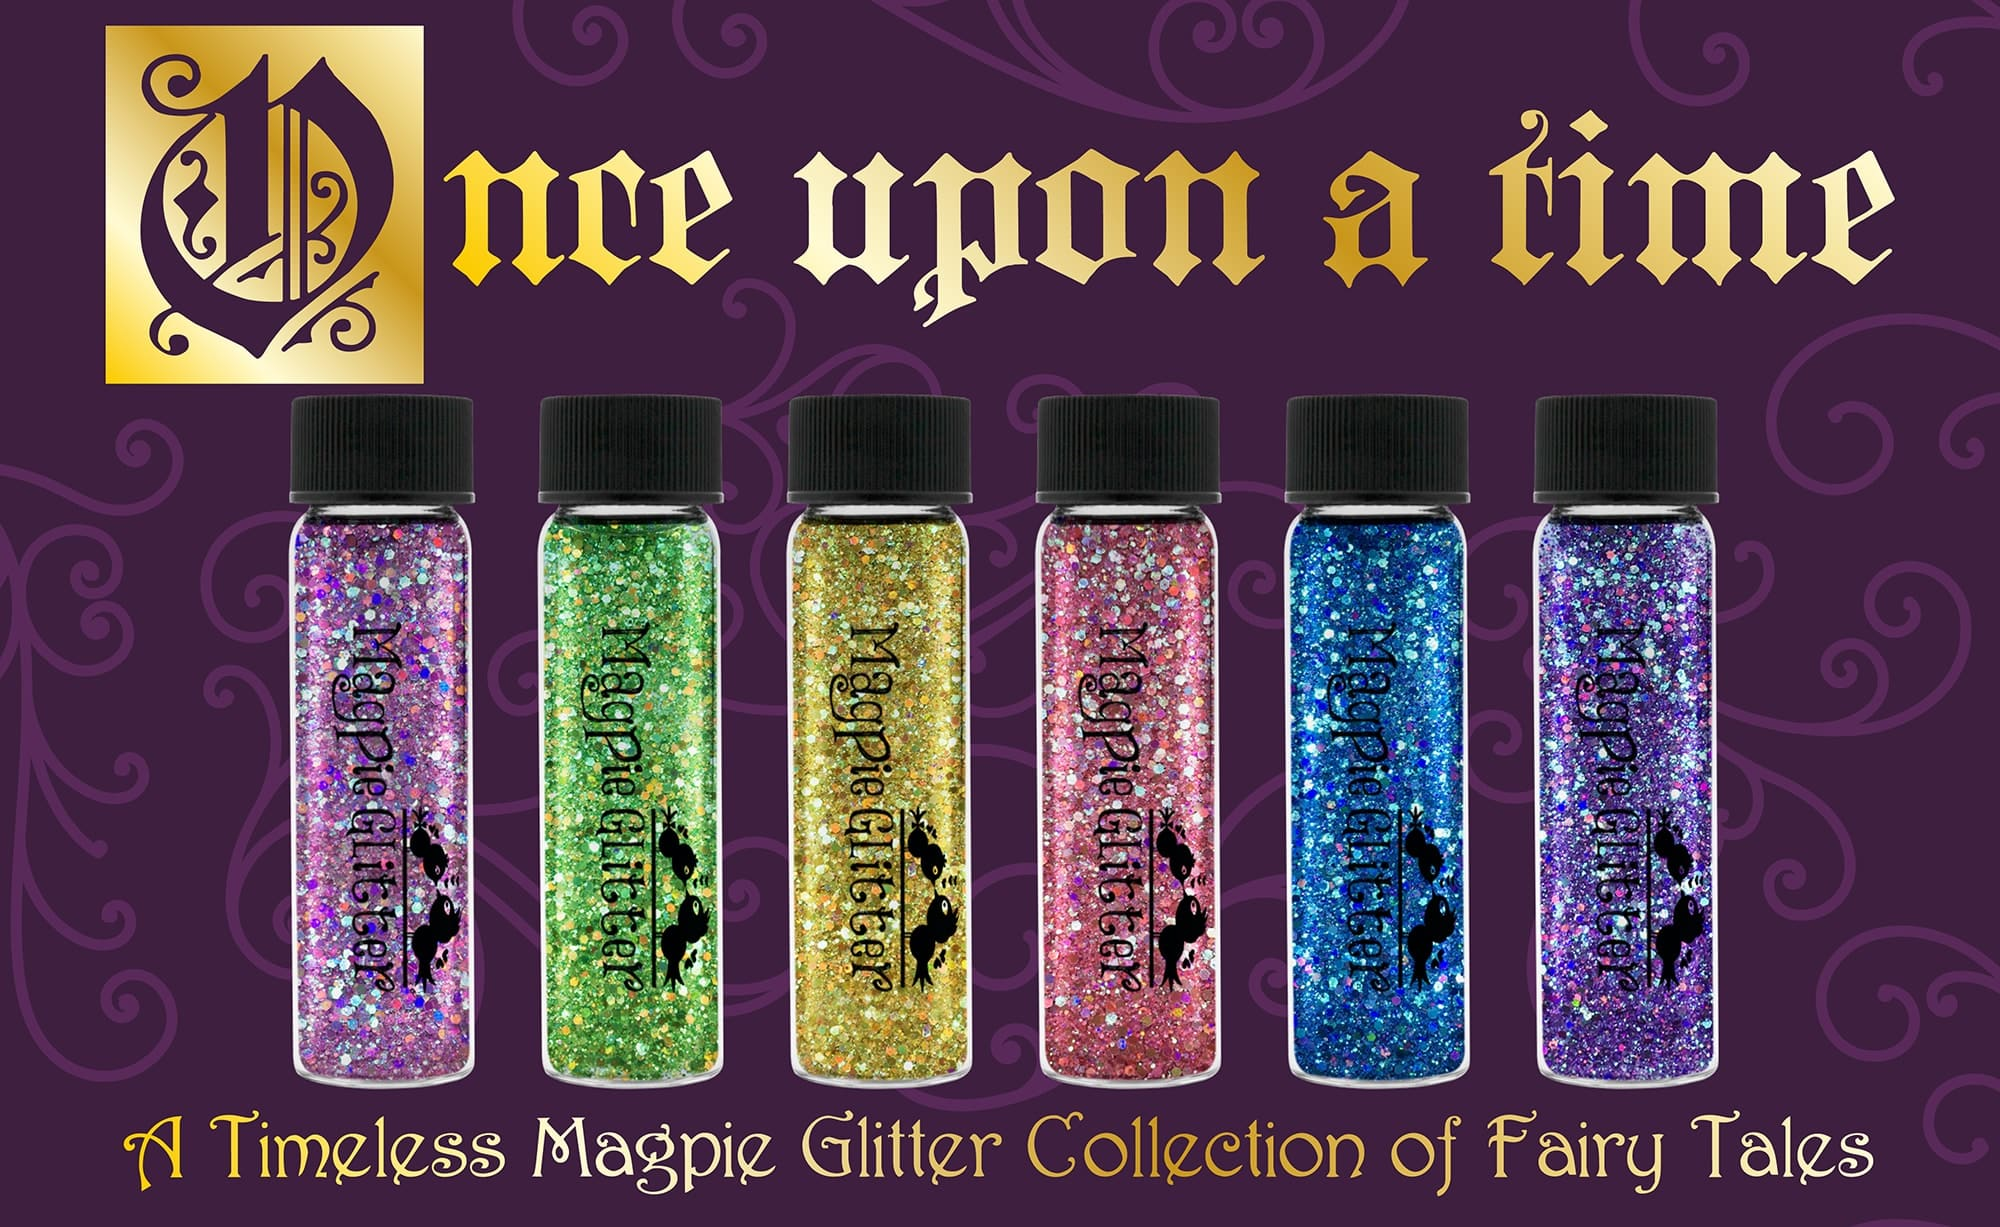 Magpie Glitter Collection - Once Upon a Time